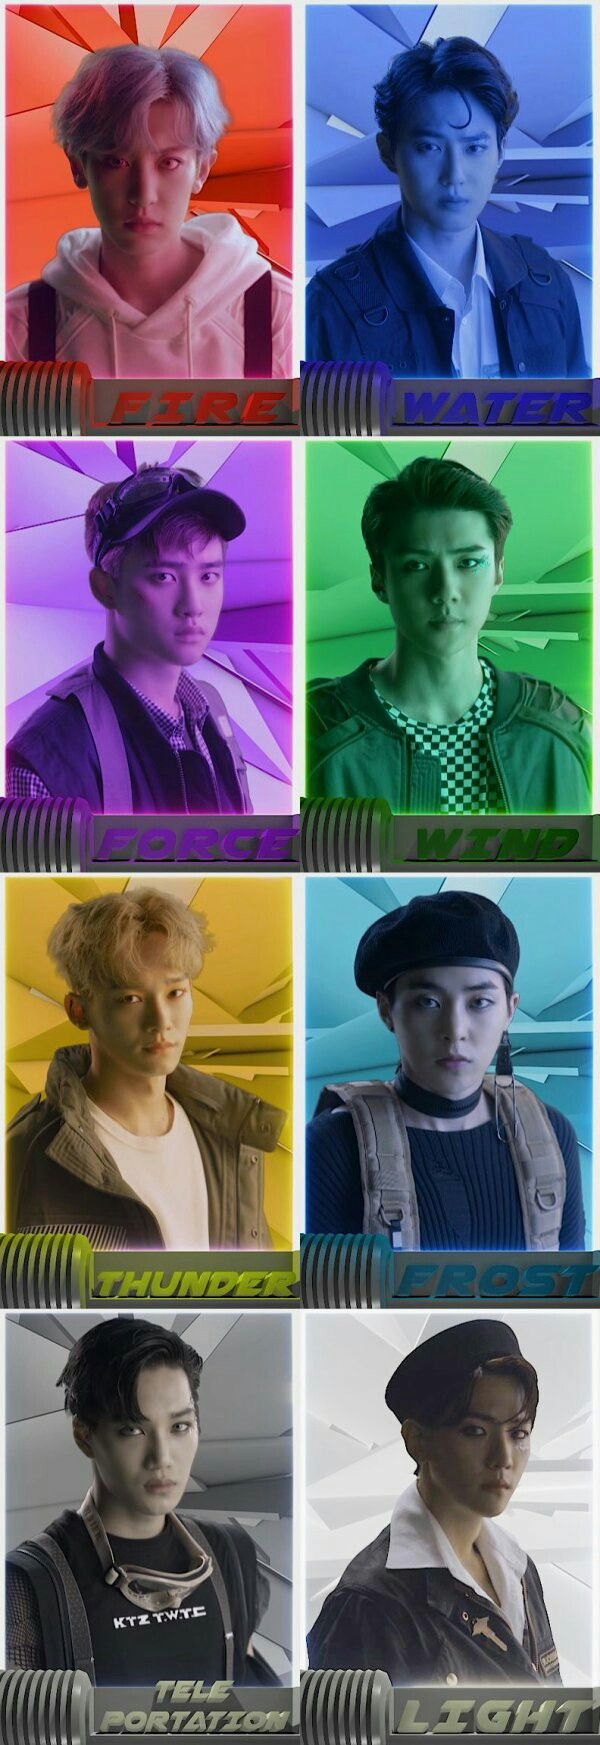 [NEWS/TRANS] 170830 EXO's Official 4th Repackage Album to be Released on Sep. 5 at 6 PM KST, Title Track 'Power' #exo